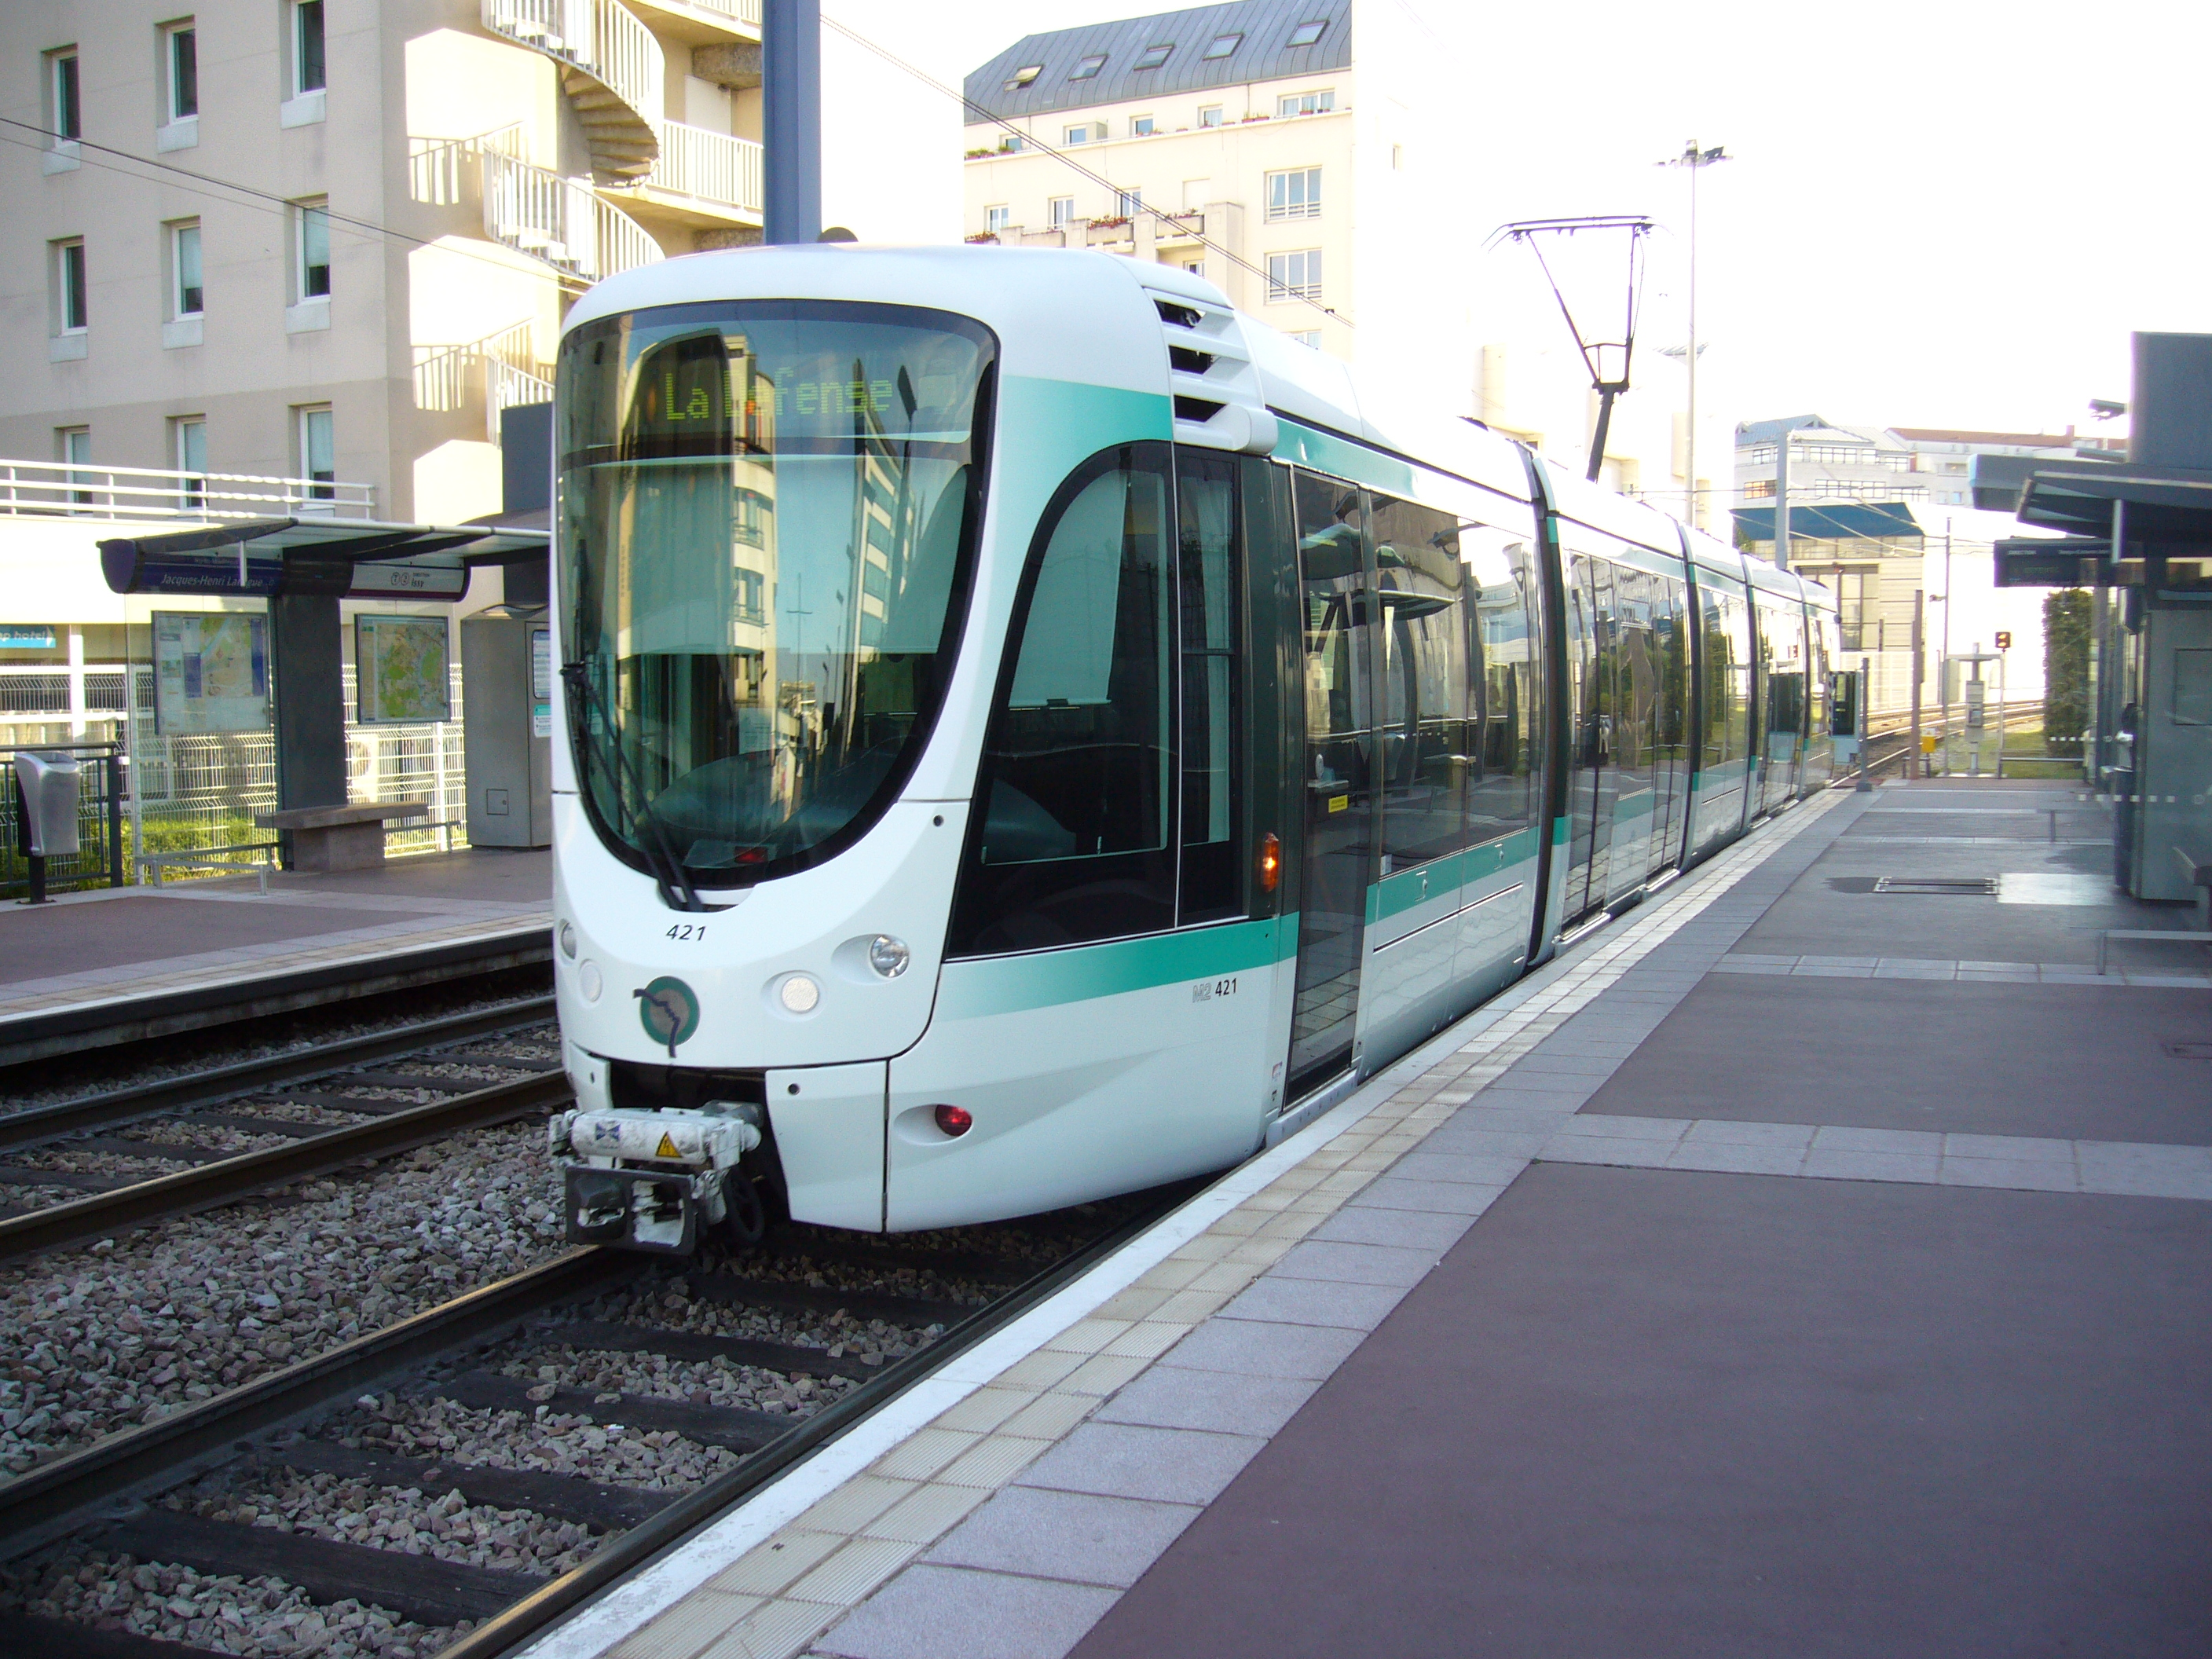 Rencontre tramway t2